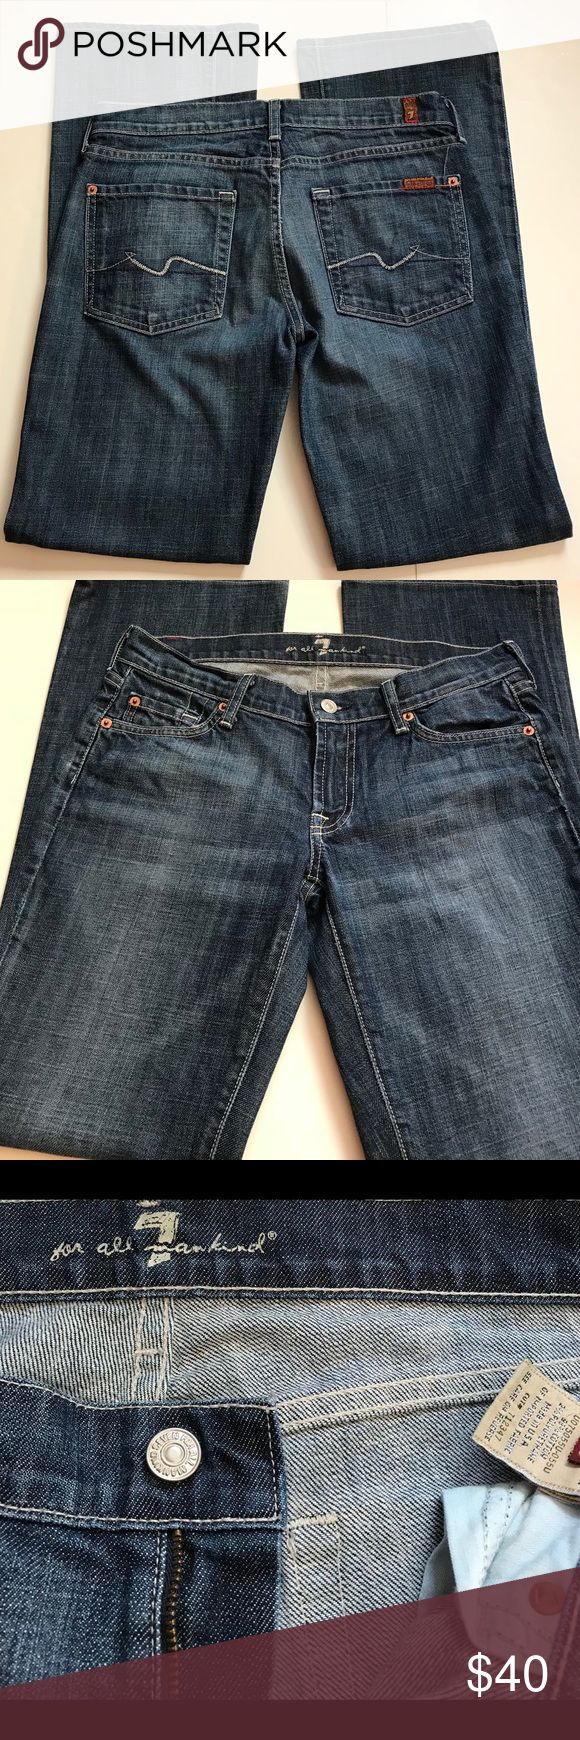 Seven For All Mankind Boot Cut Low Rise Jeans Seven For All Mankind Boot Cut Low Rise Jeans size 28 x 30.5 Excellent condition!  I'm a speedy shipper and we have a smoke free home. Additional measurements upon request. I'm always open to reasonable offers. Seven For All Mankind Jeans Boot Cut